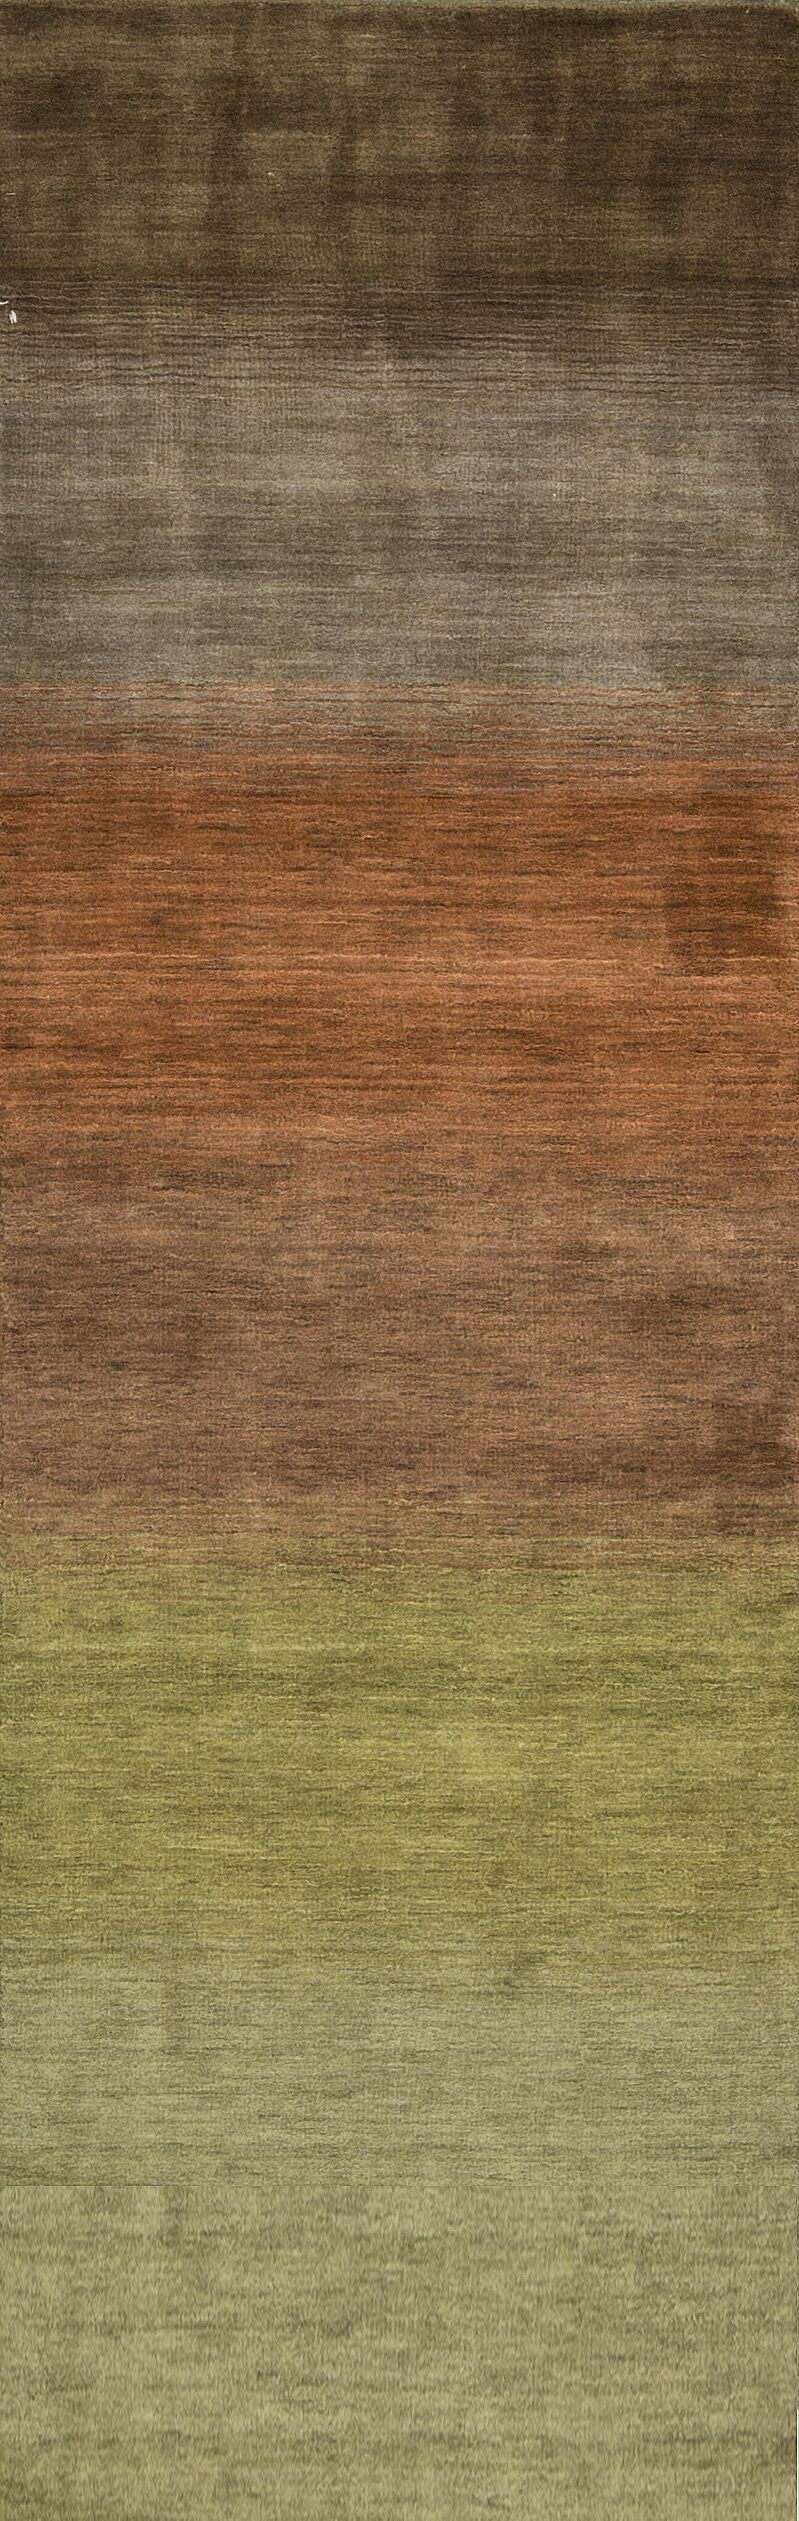 Gabbeh Wool Green/Brown Indoor Area Rug